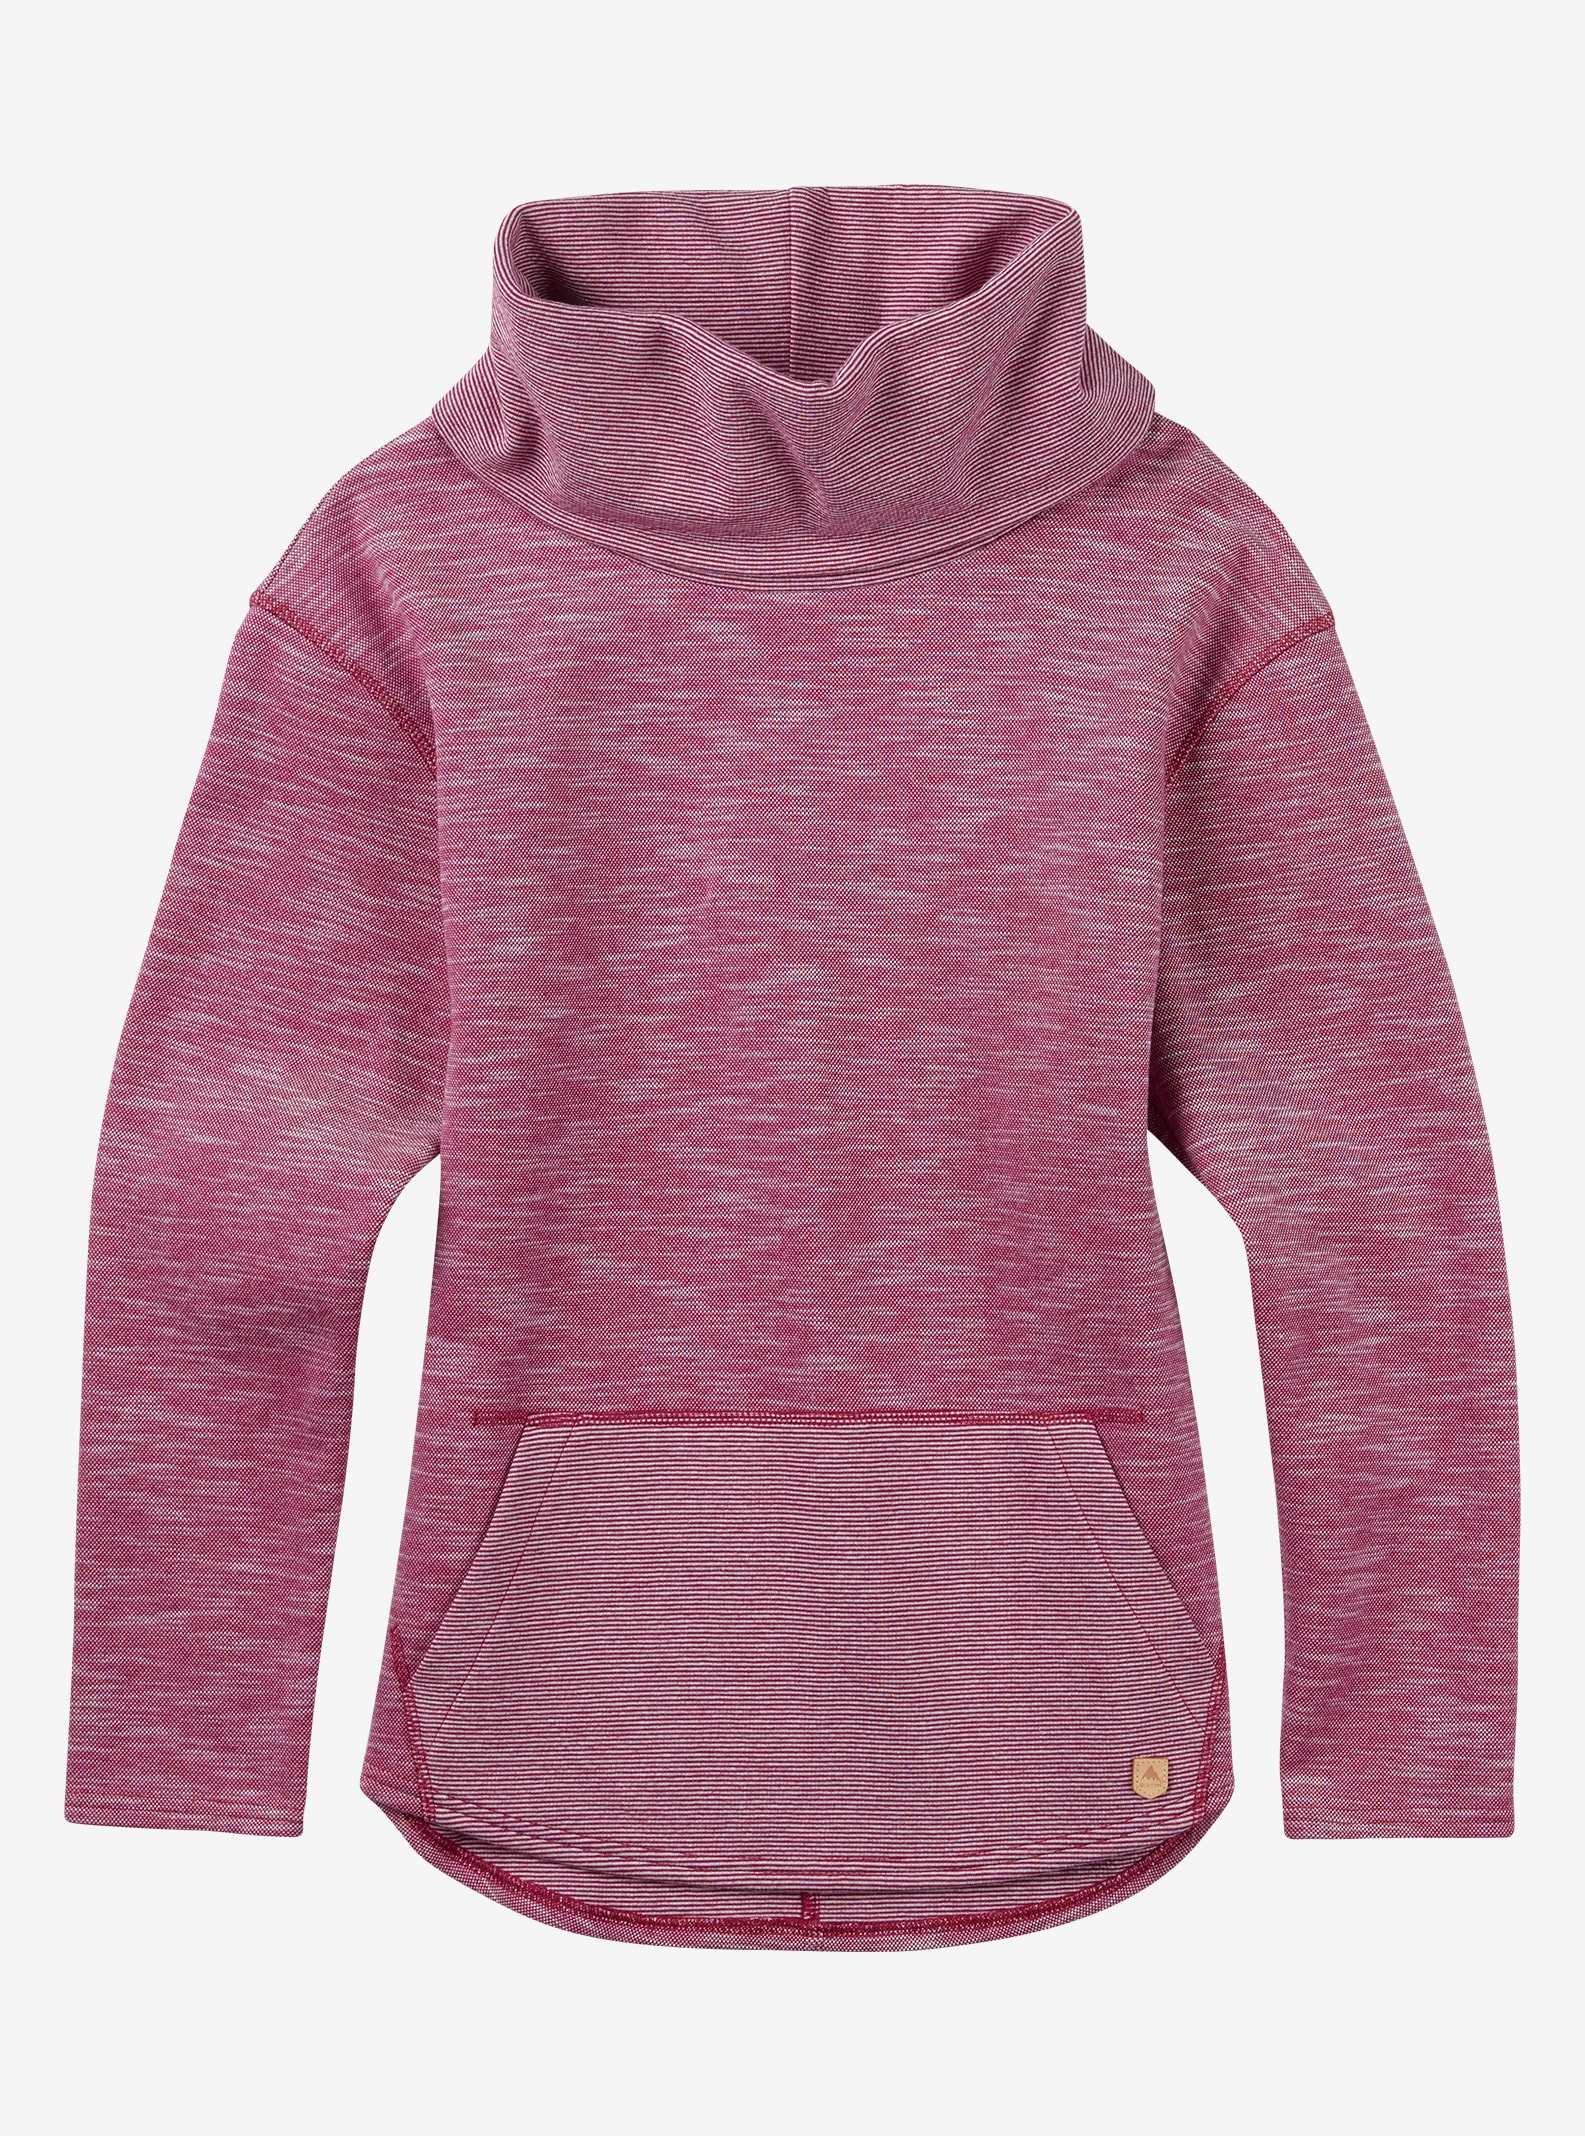 Burton Ellmore Pullover shown in Anemone Heather